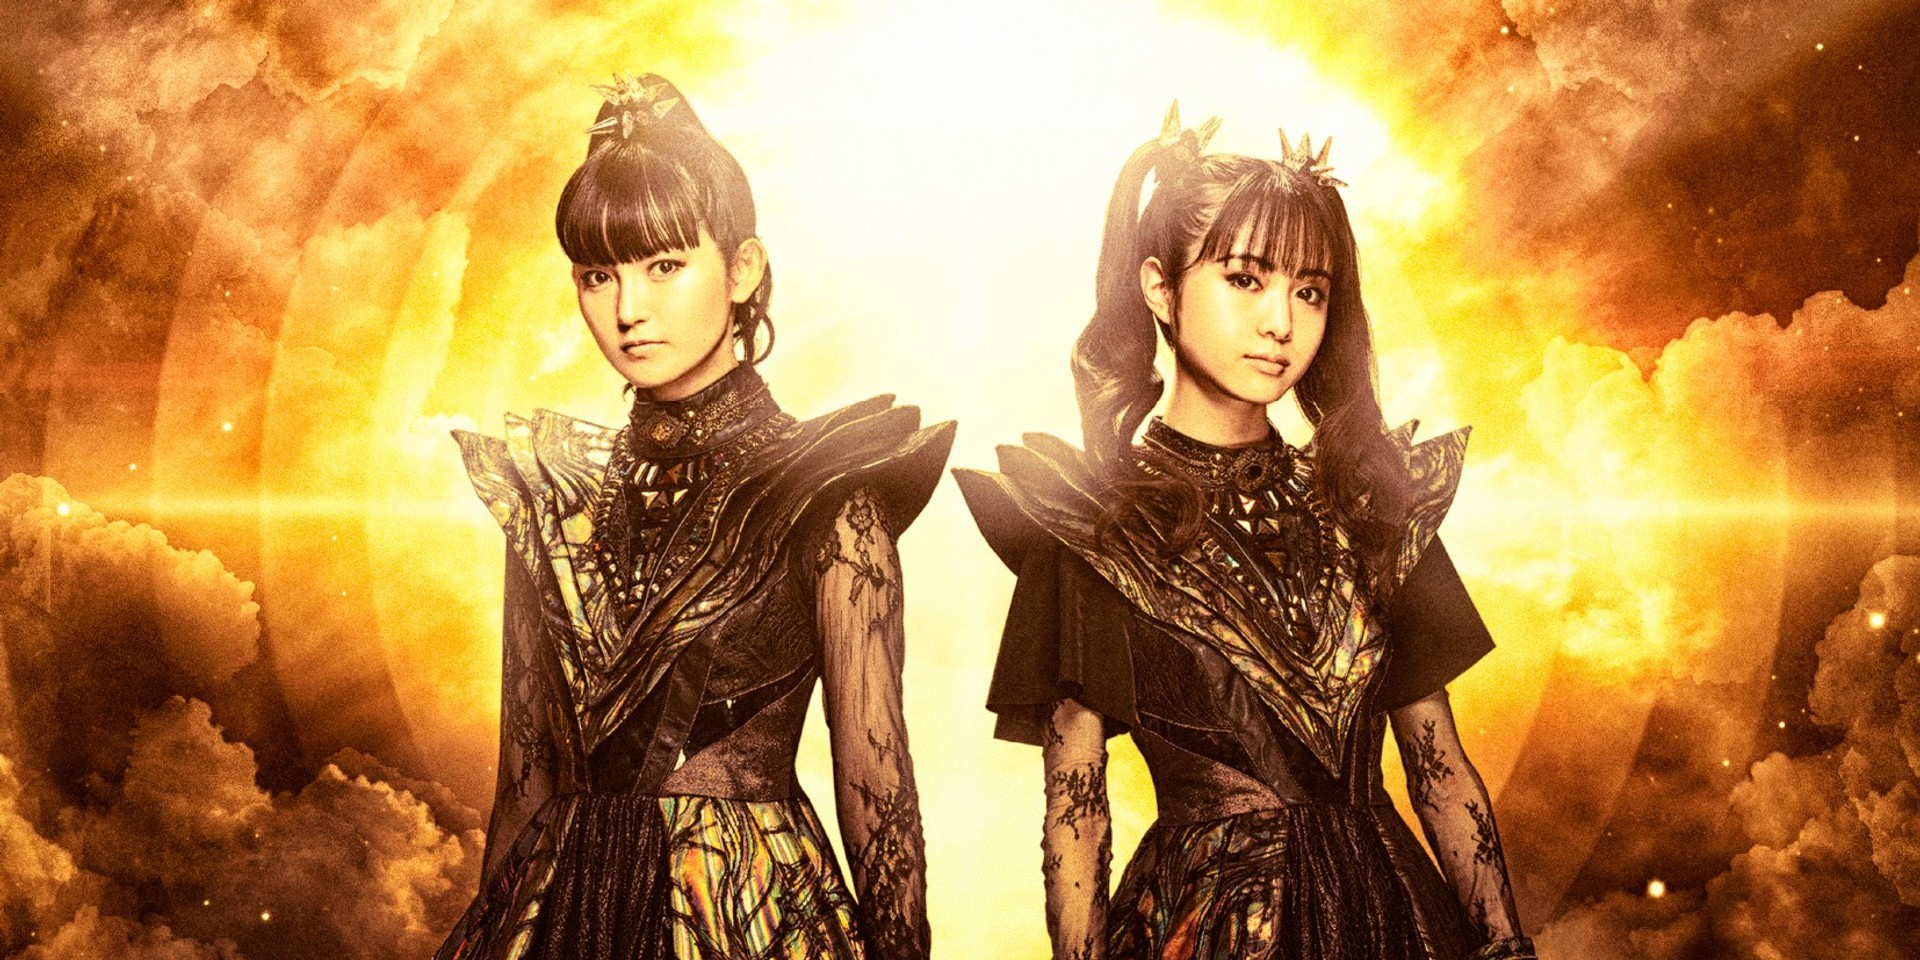 BABYMETAL to play 10 live concerts in Japan starting in January